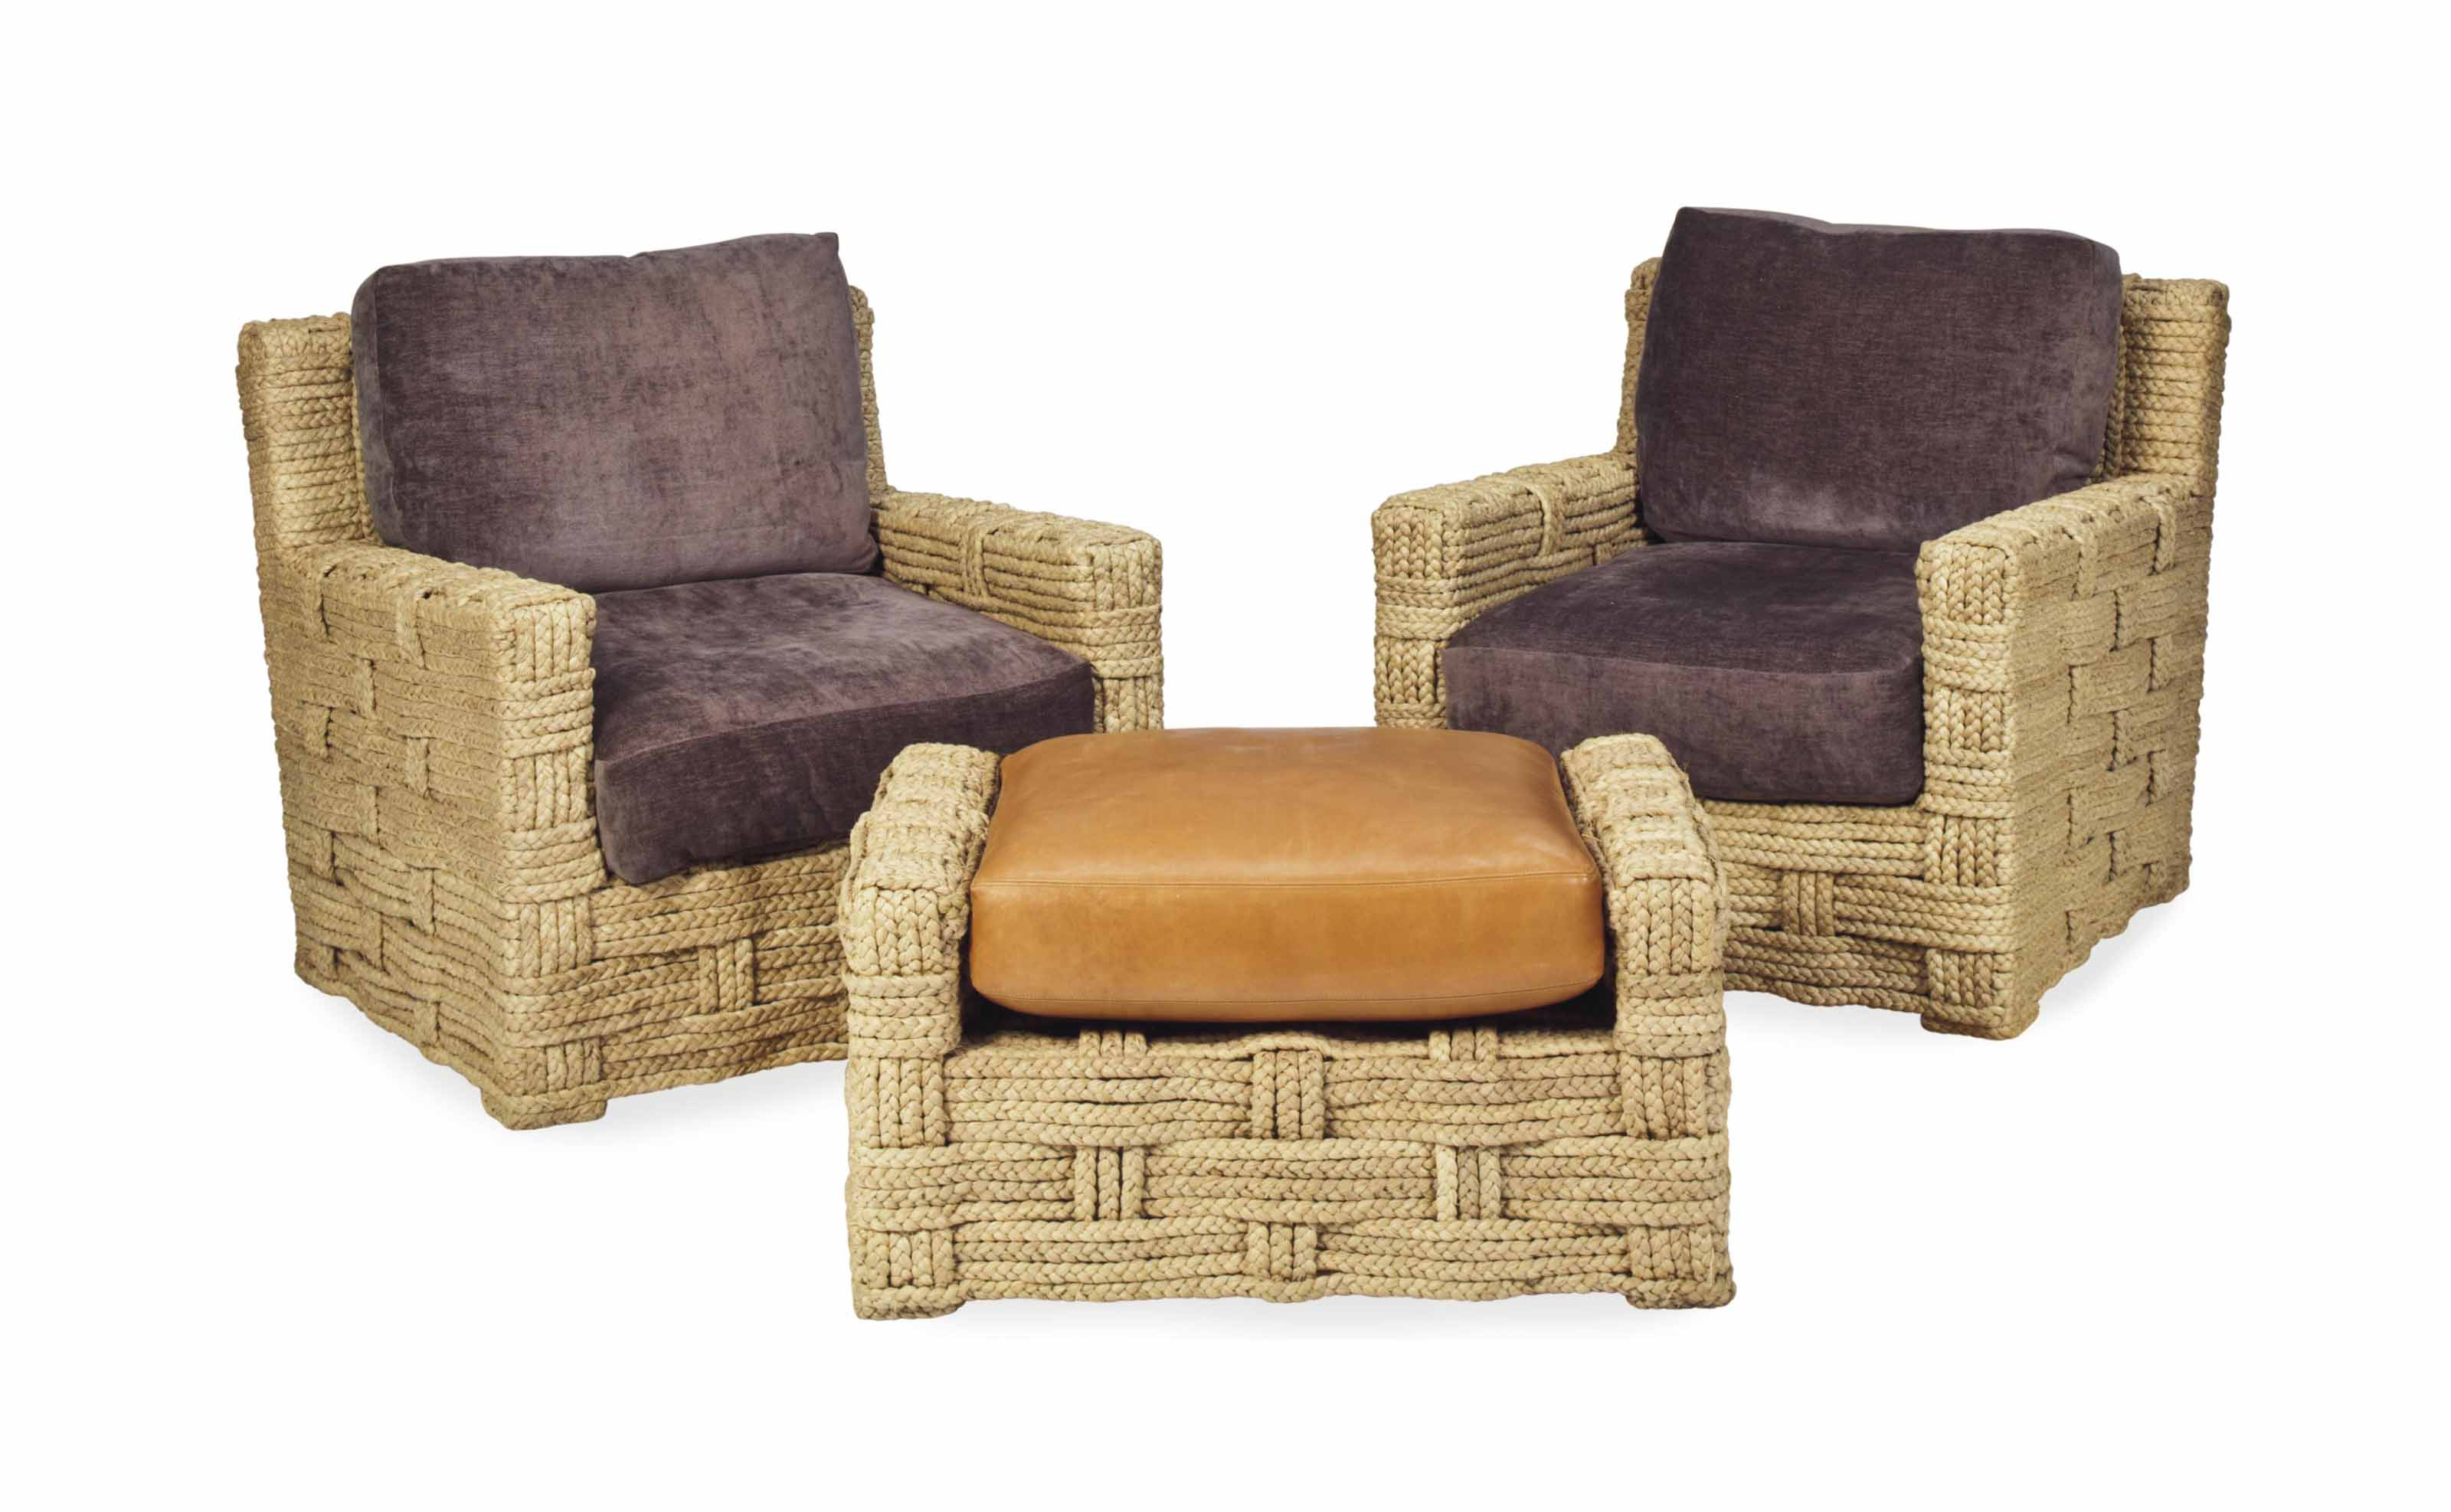 A PAIR OF ROPE-WRAPPED ARMCHAIRS AND AN OTTOMAN,